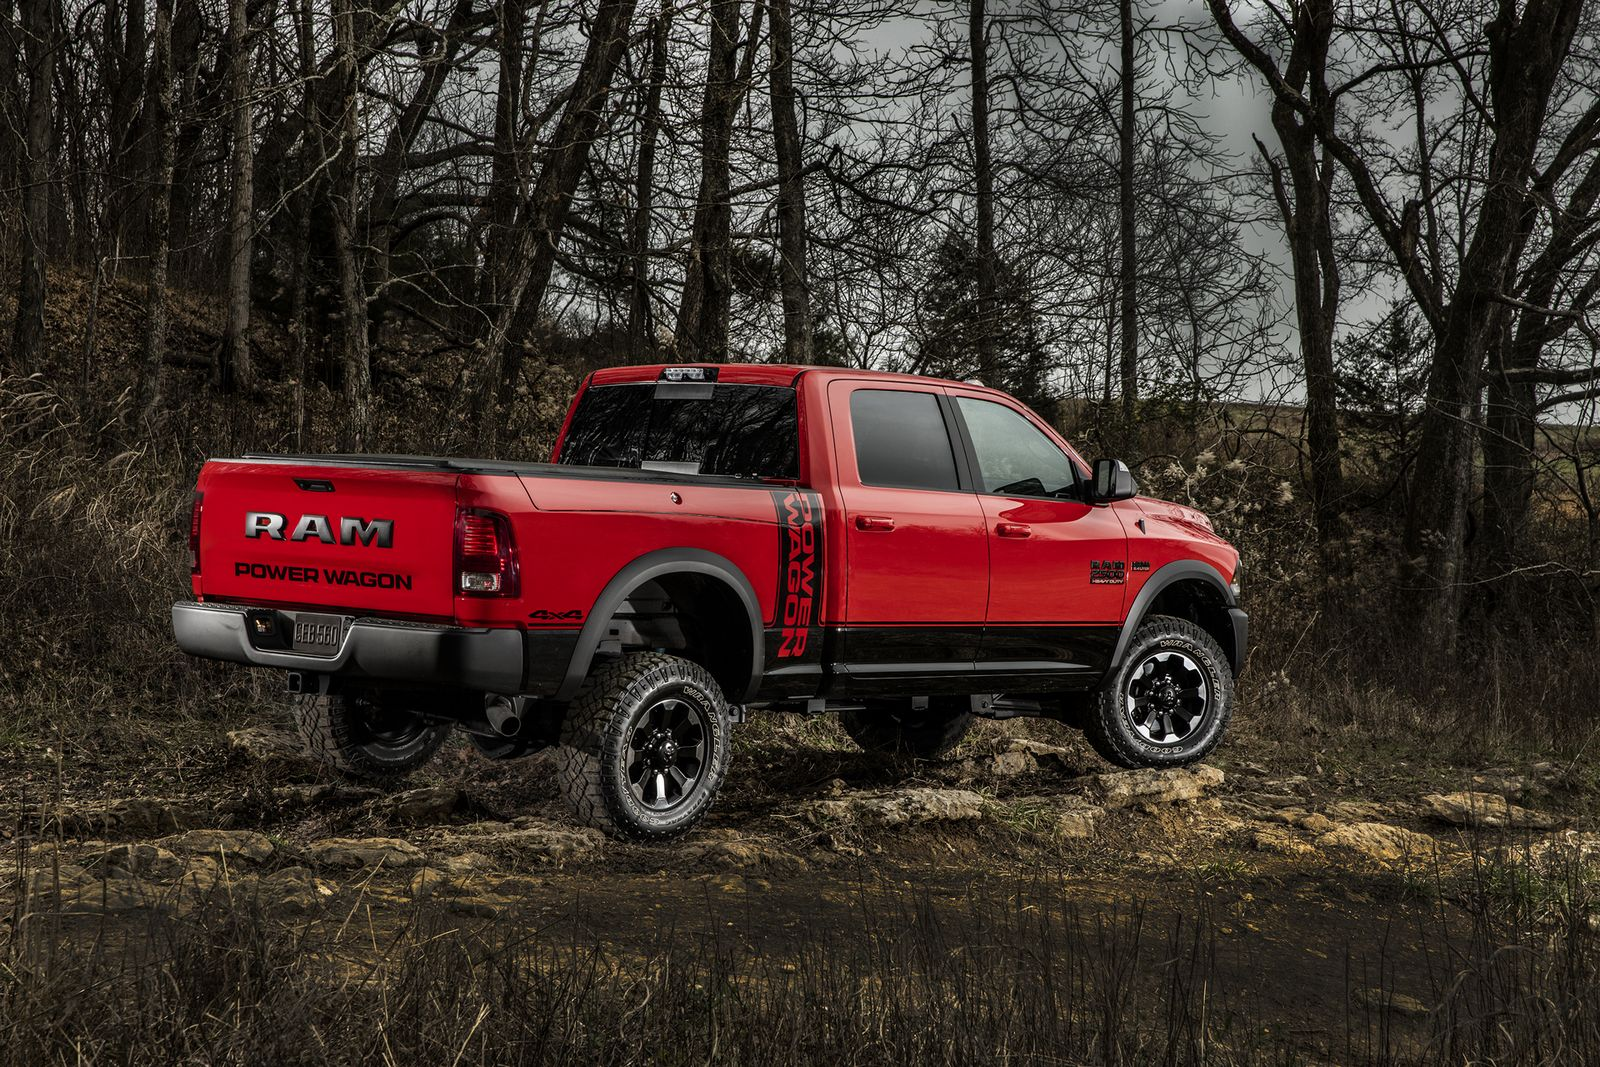 Vwvortex com ram freshens the power wagon for 2017 the ultimate off road truck gains updated styling